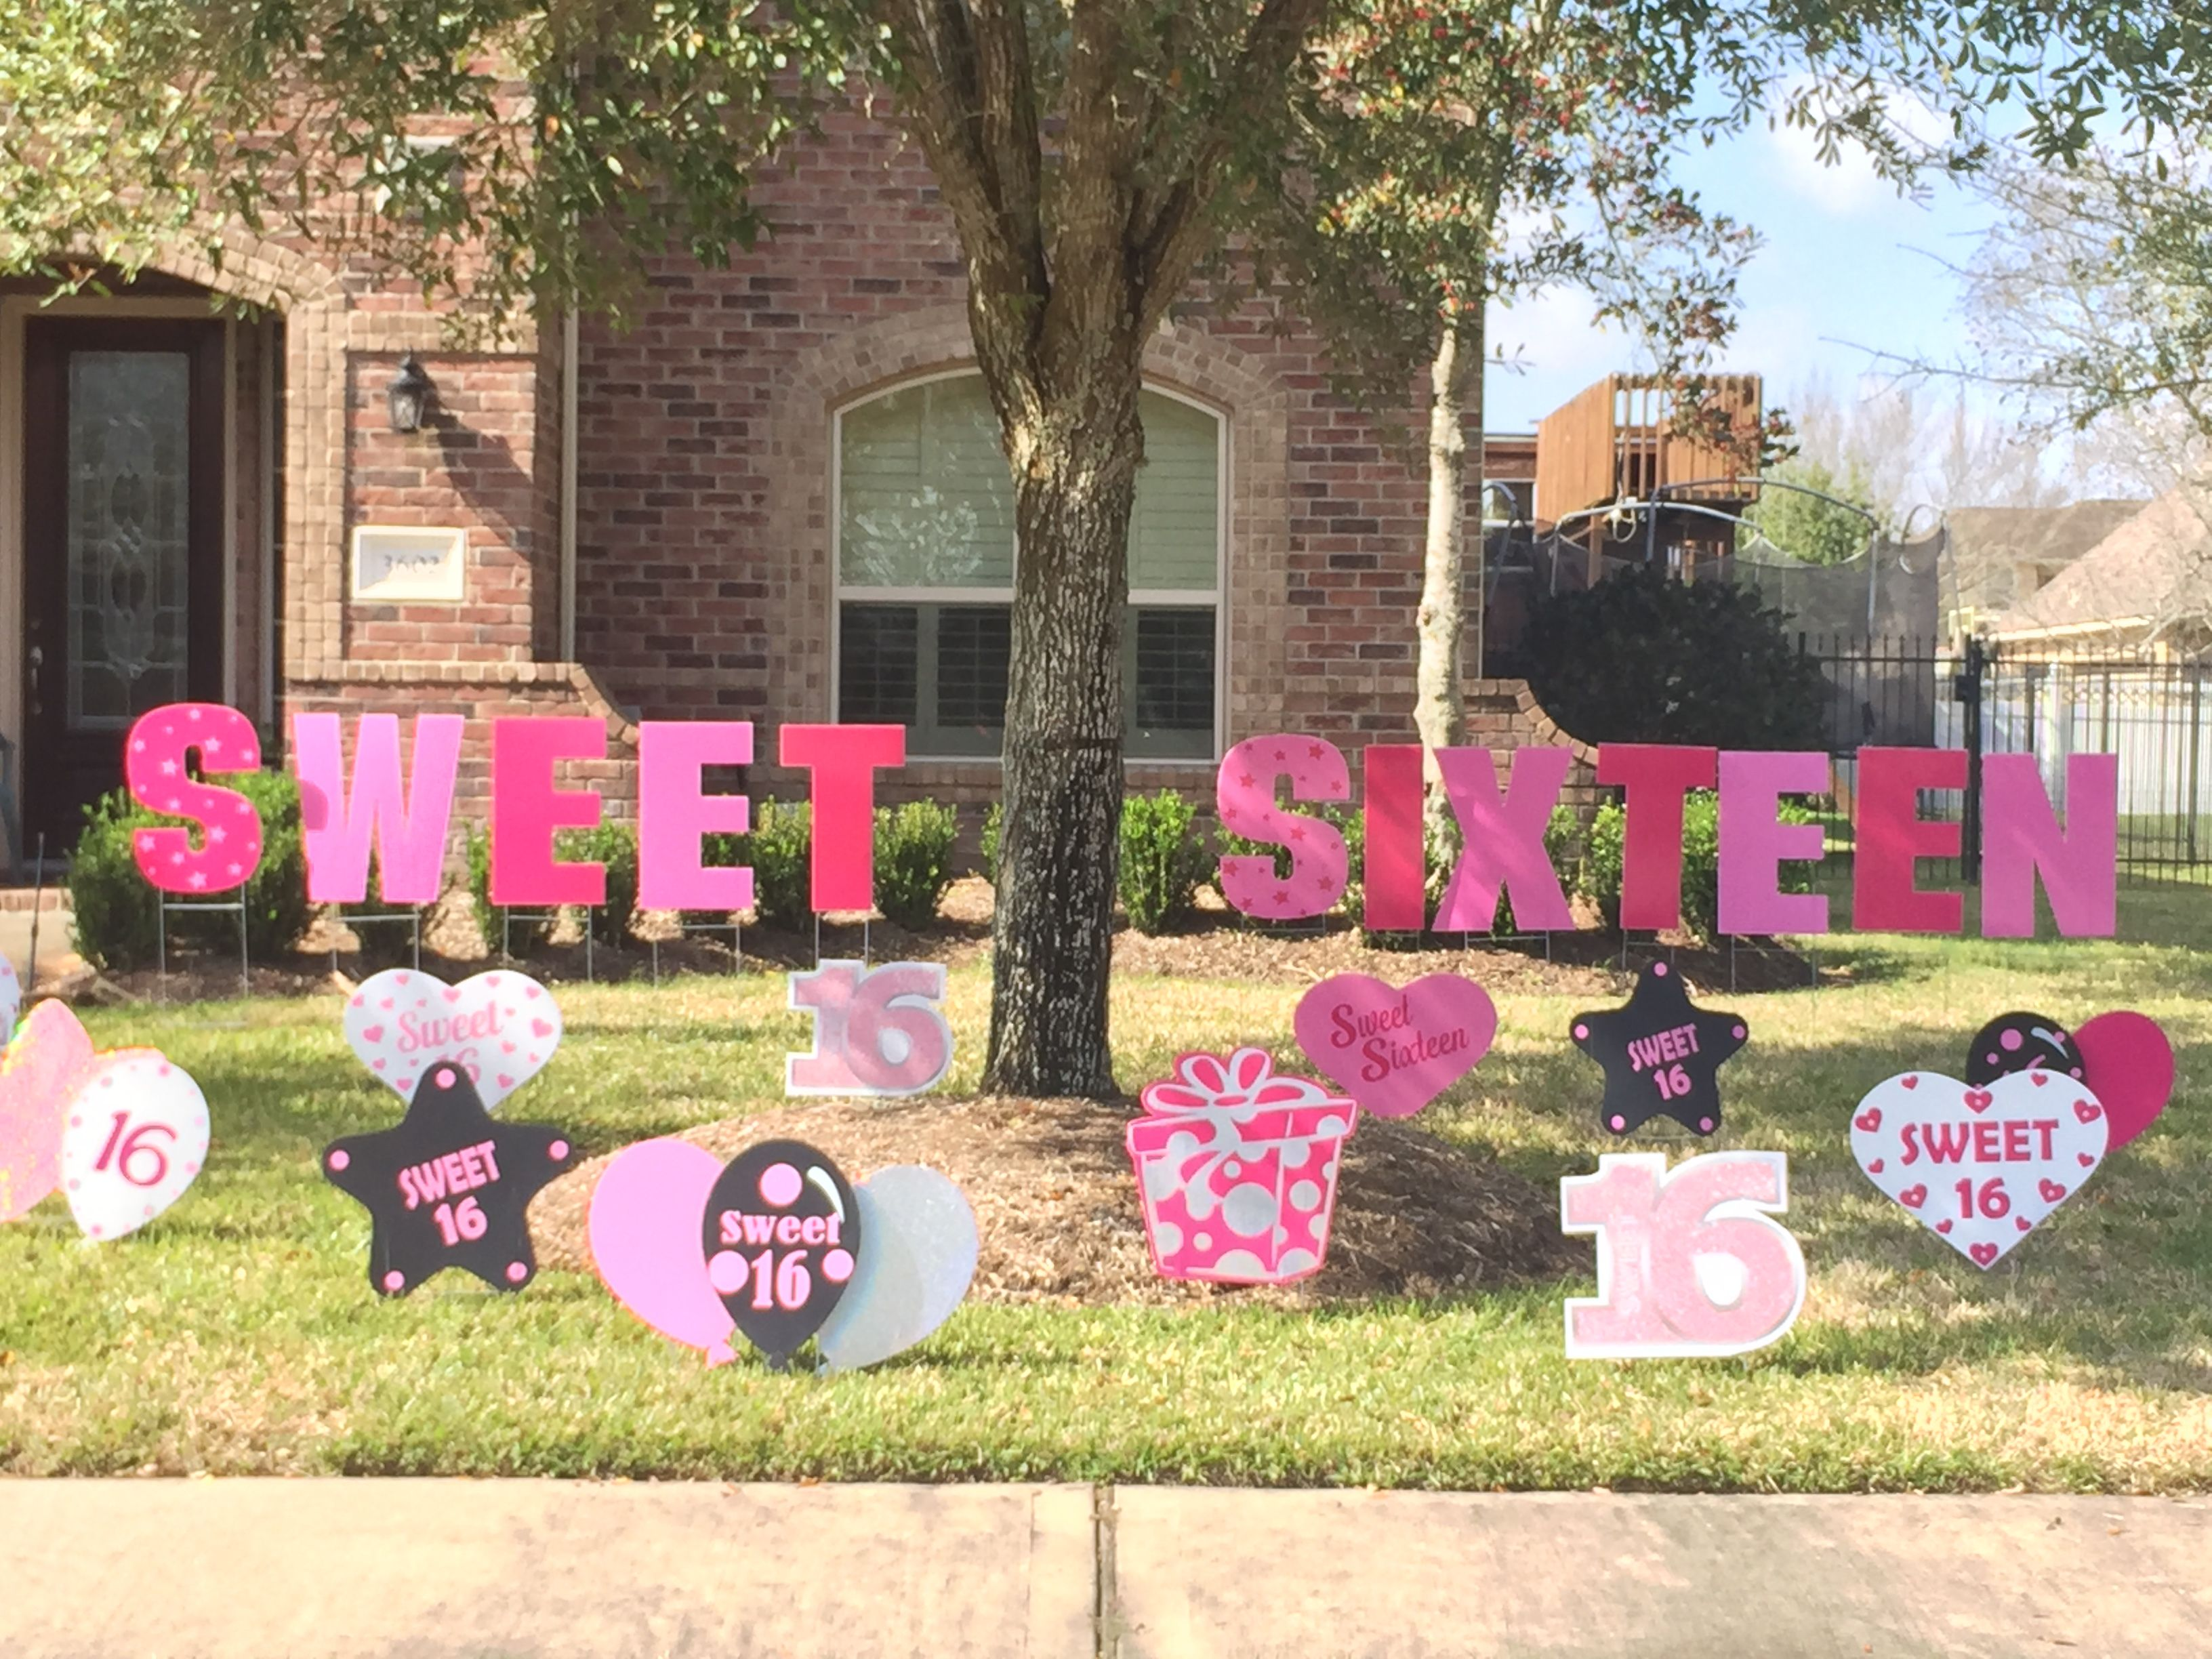 Introducing Our Beautiful New Sweet Sixteen Lawn Letters Along